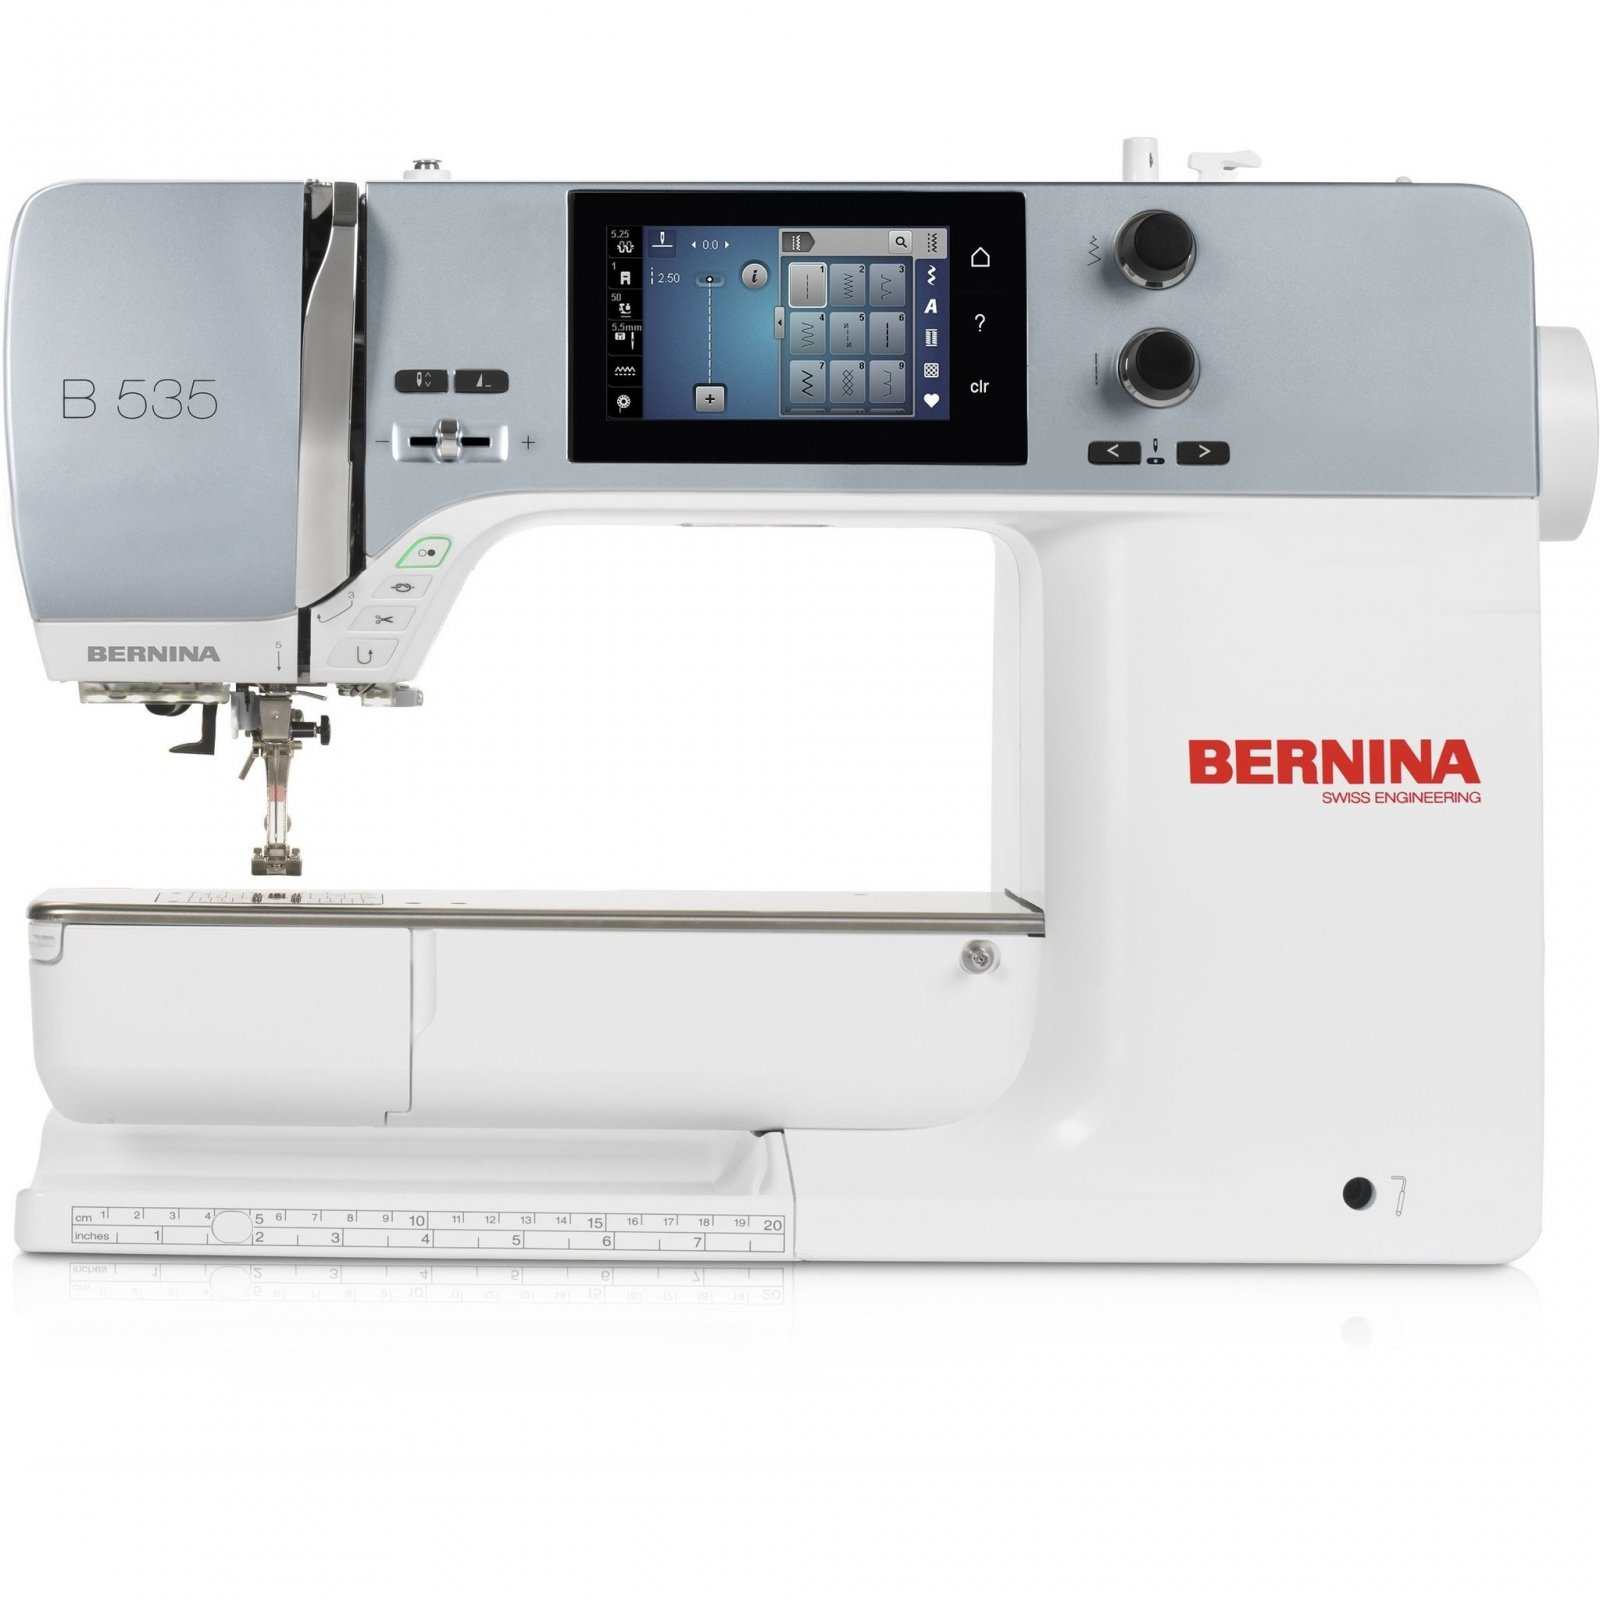 BERNINA 535 (With Embroidery)